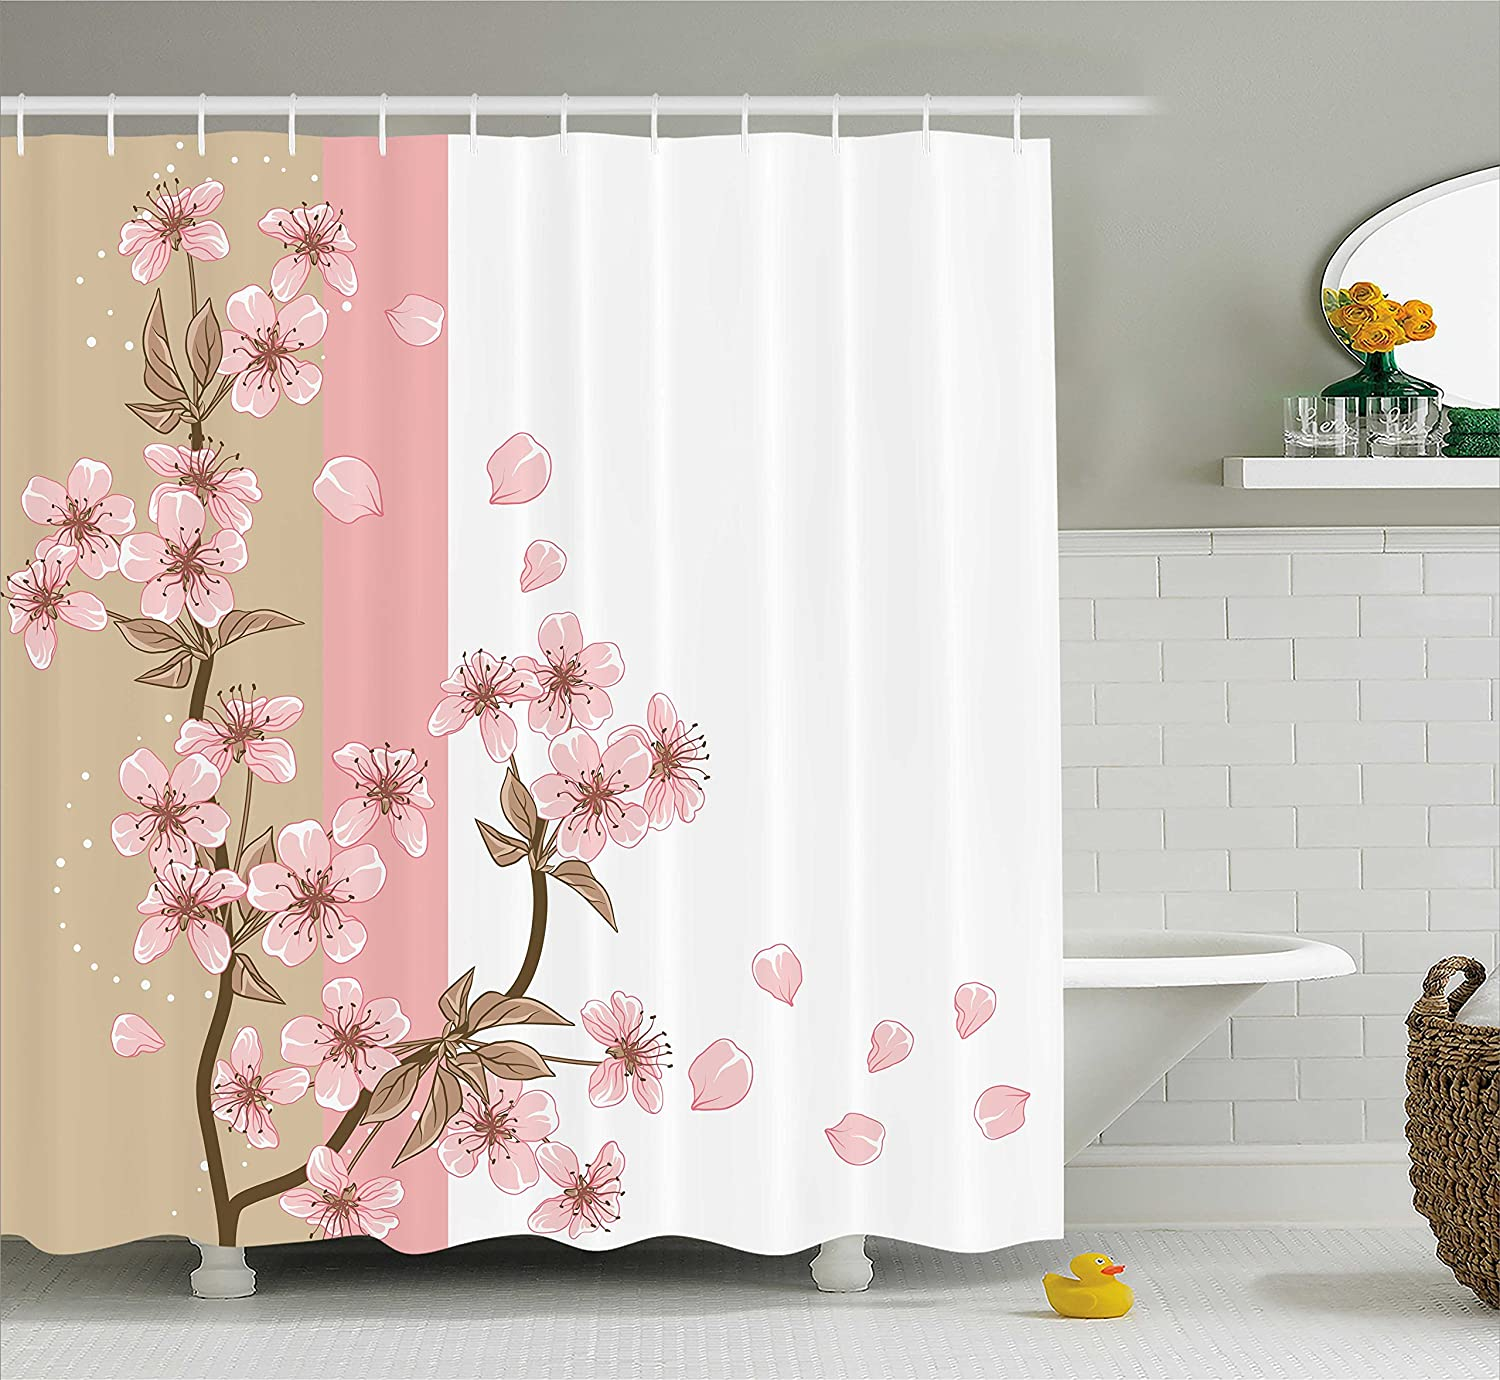 70 Inches Fabric Bathroom Decor Set with Hooks Ambesonne Modern Shower Curtain Cute Cat Faces with Dotted Whiskers Kittens Animals Kids Nursery Theme Coral Peach